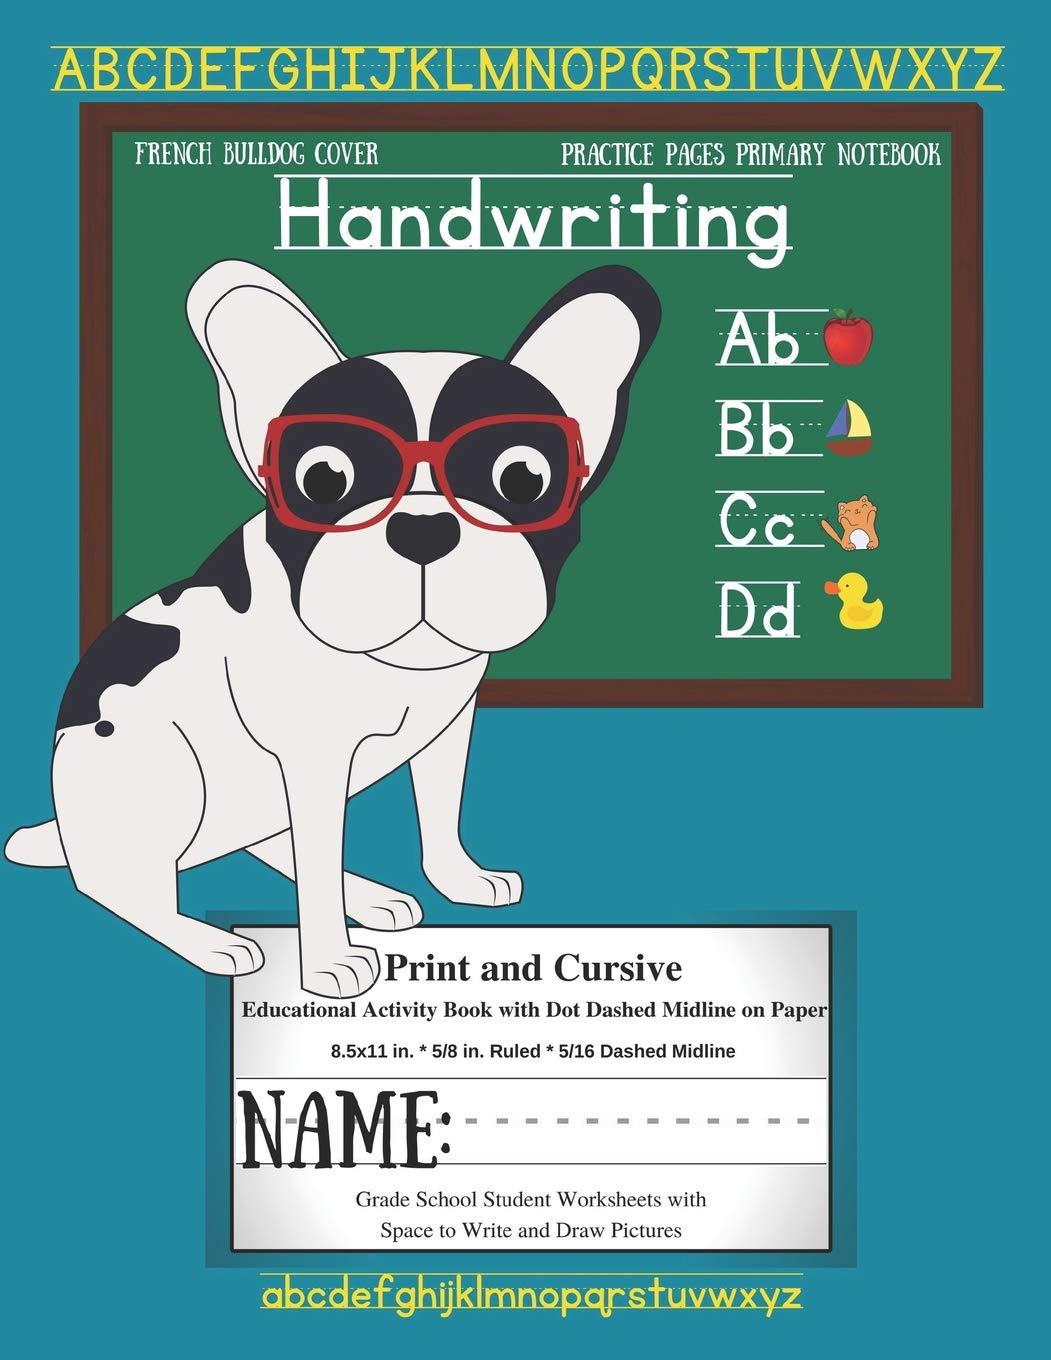 French Bulldog Cover Handwriting Practice Pages Primary Notebook